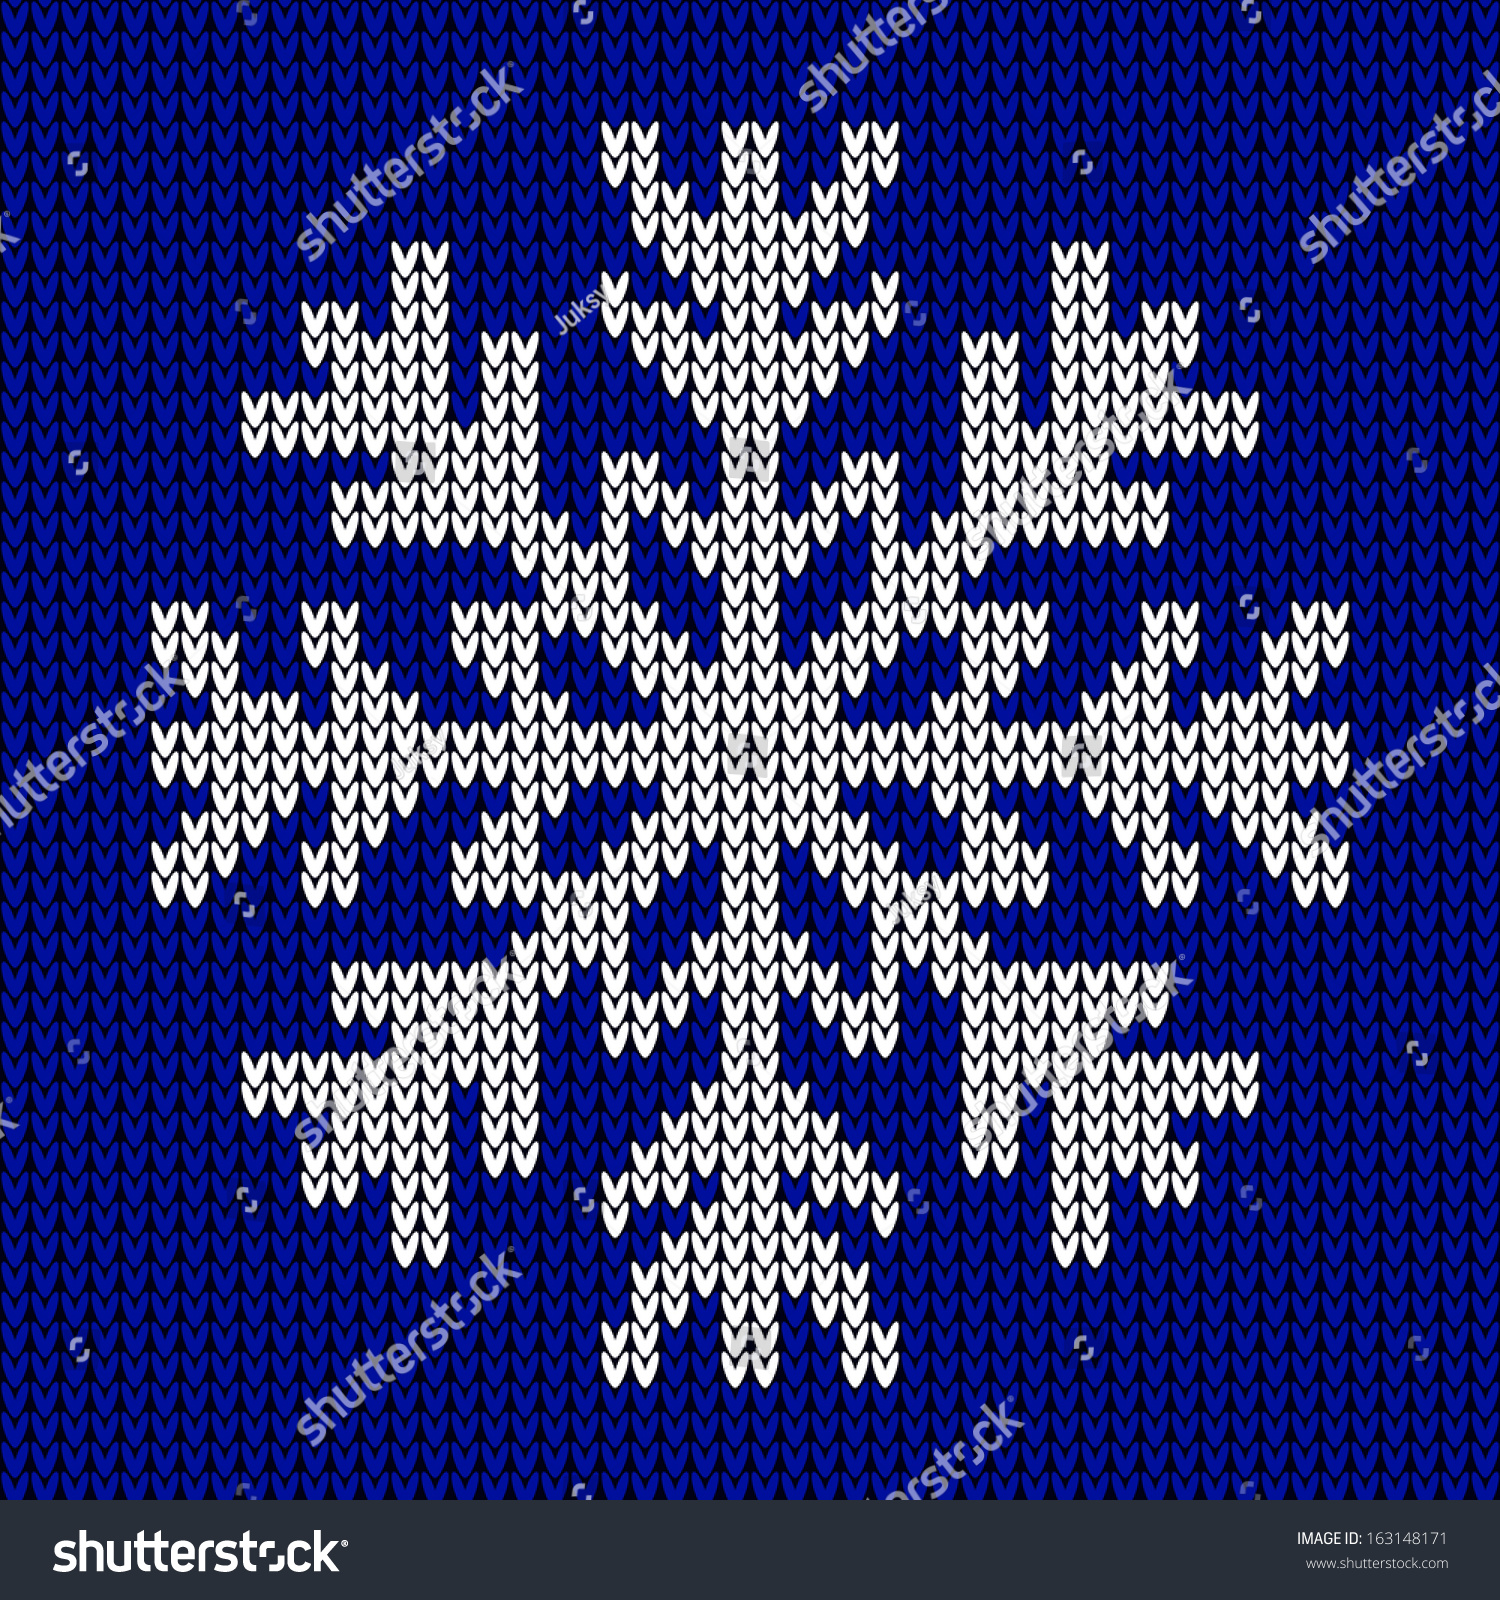 Snowflake Christmas Knitted Ornament On Blue Stock Vector (Royalty ...